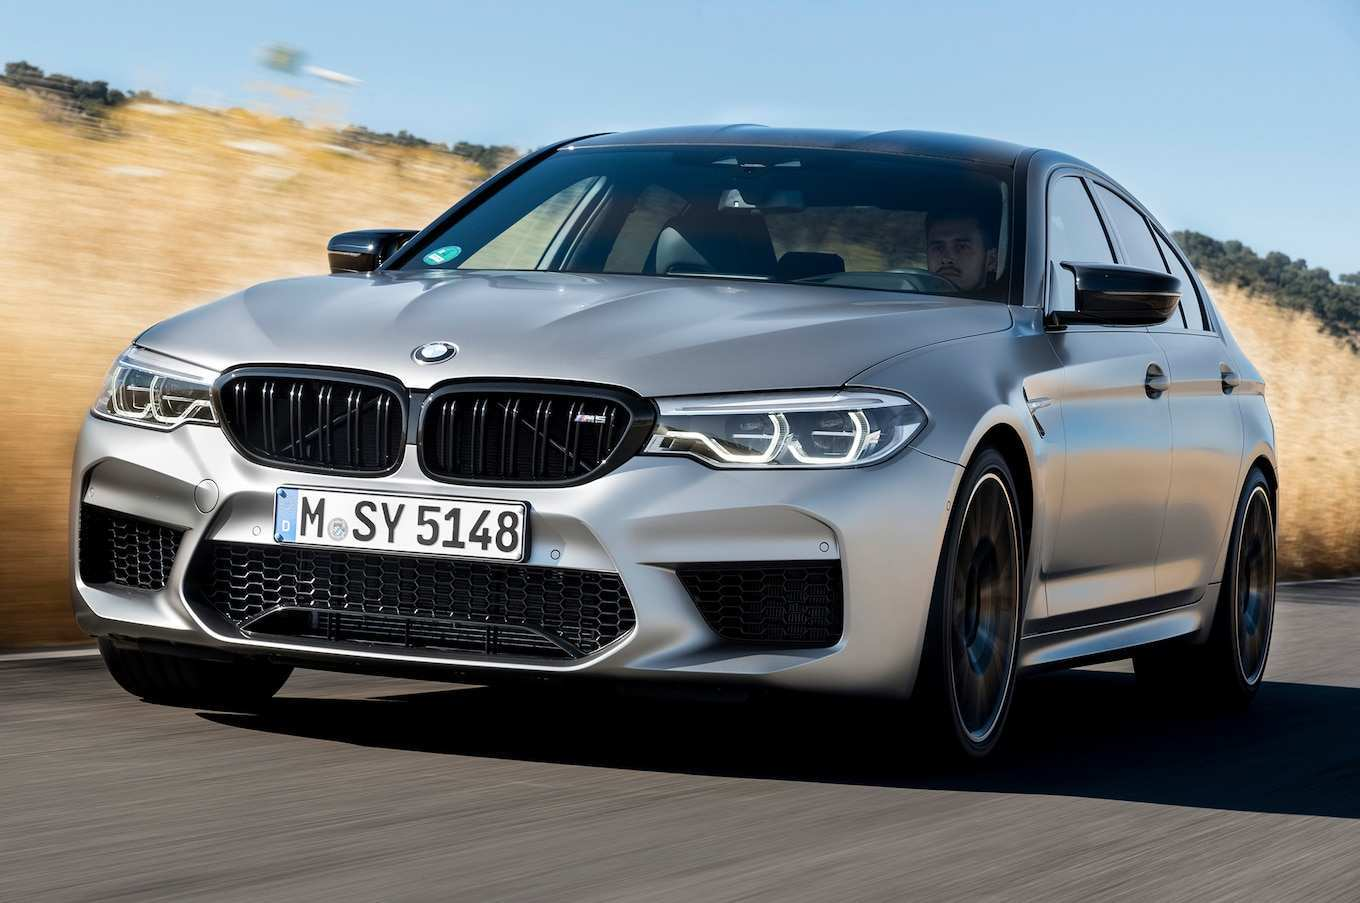 97 Great Bmw M5 Redesign Price and Review with Bmw M5 Redesign